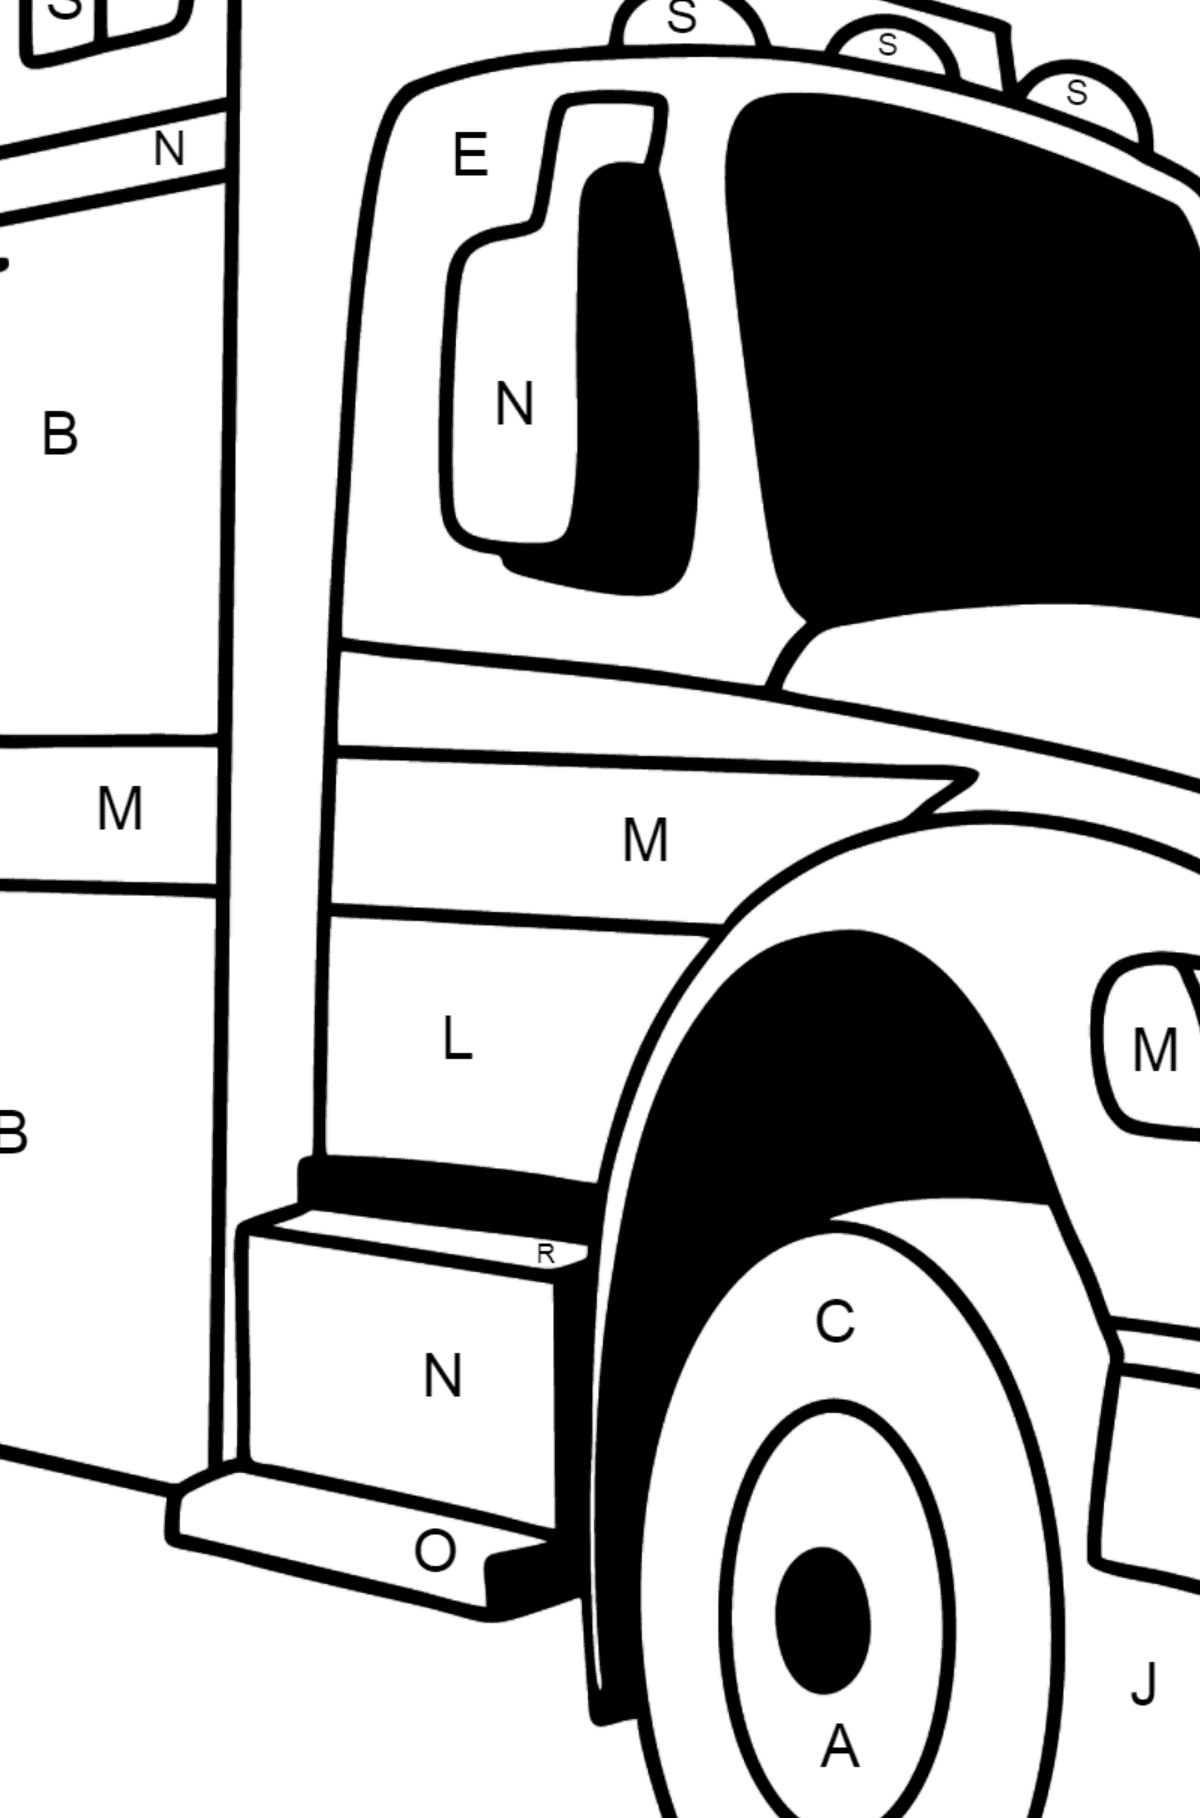 Fire Truck in Argentina coloring page - Coloring by Letters for Kids